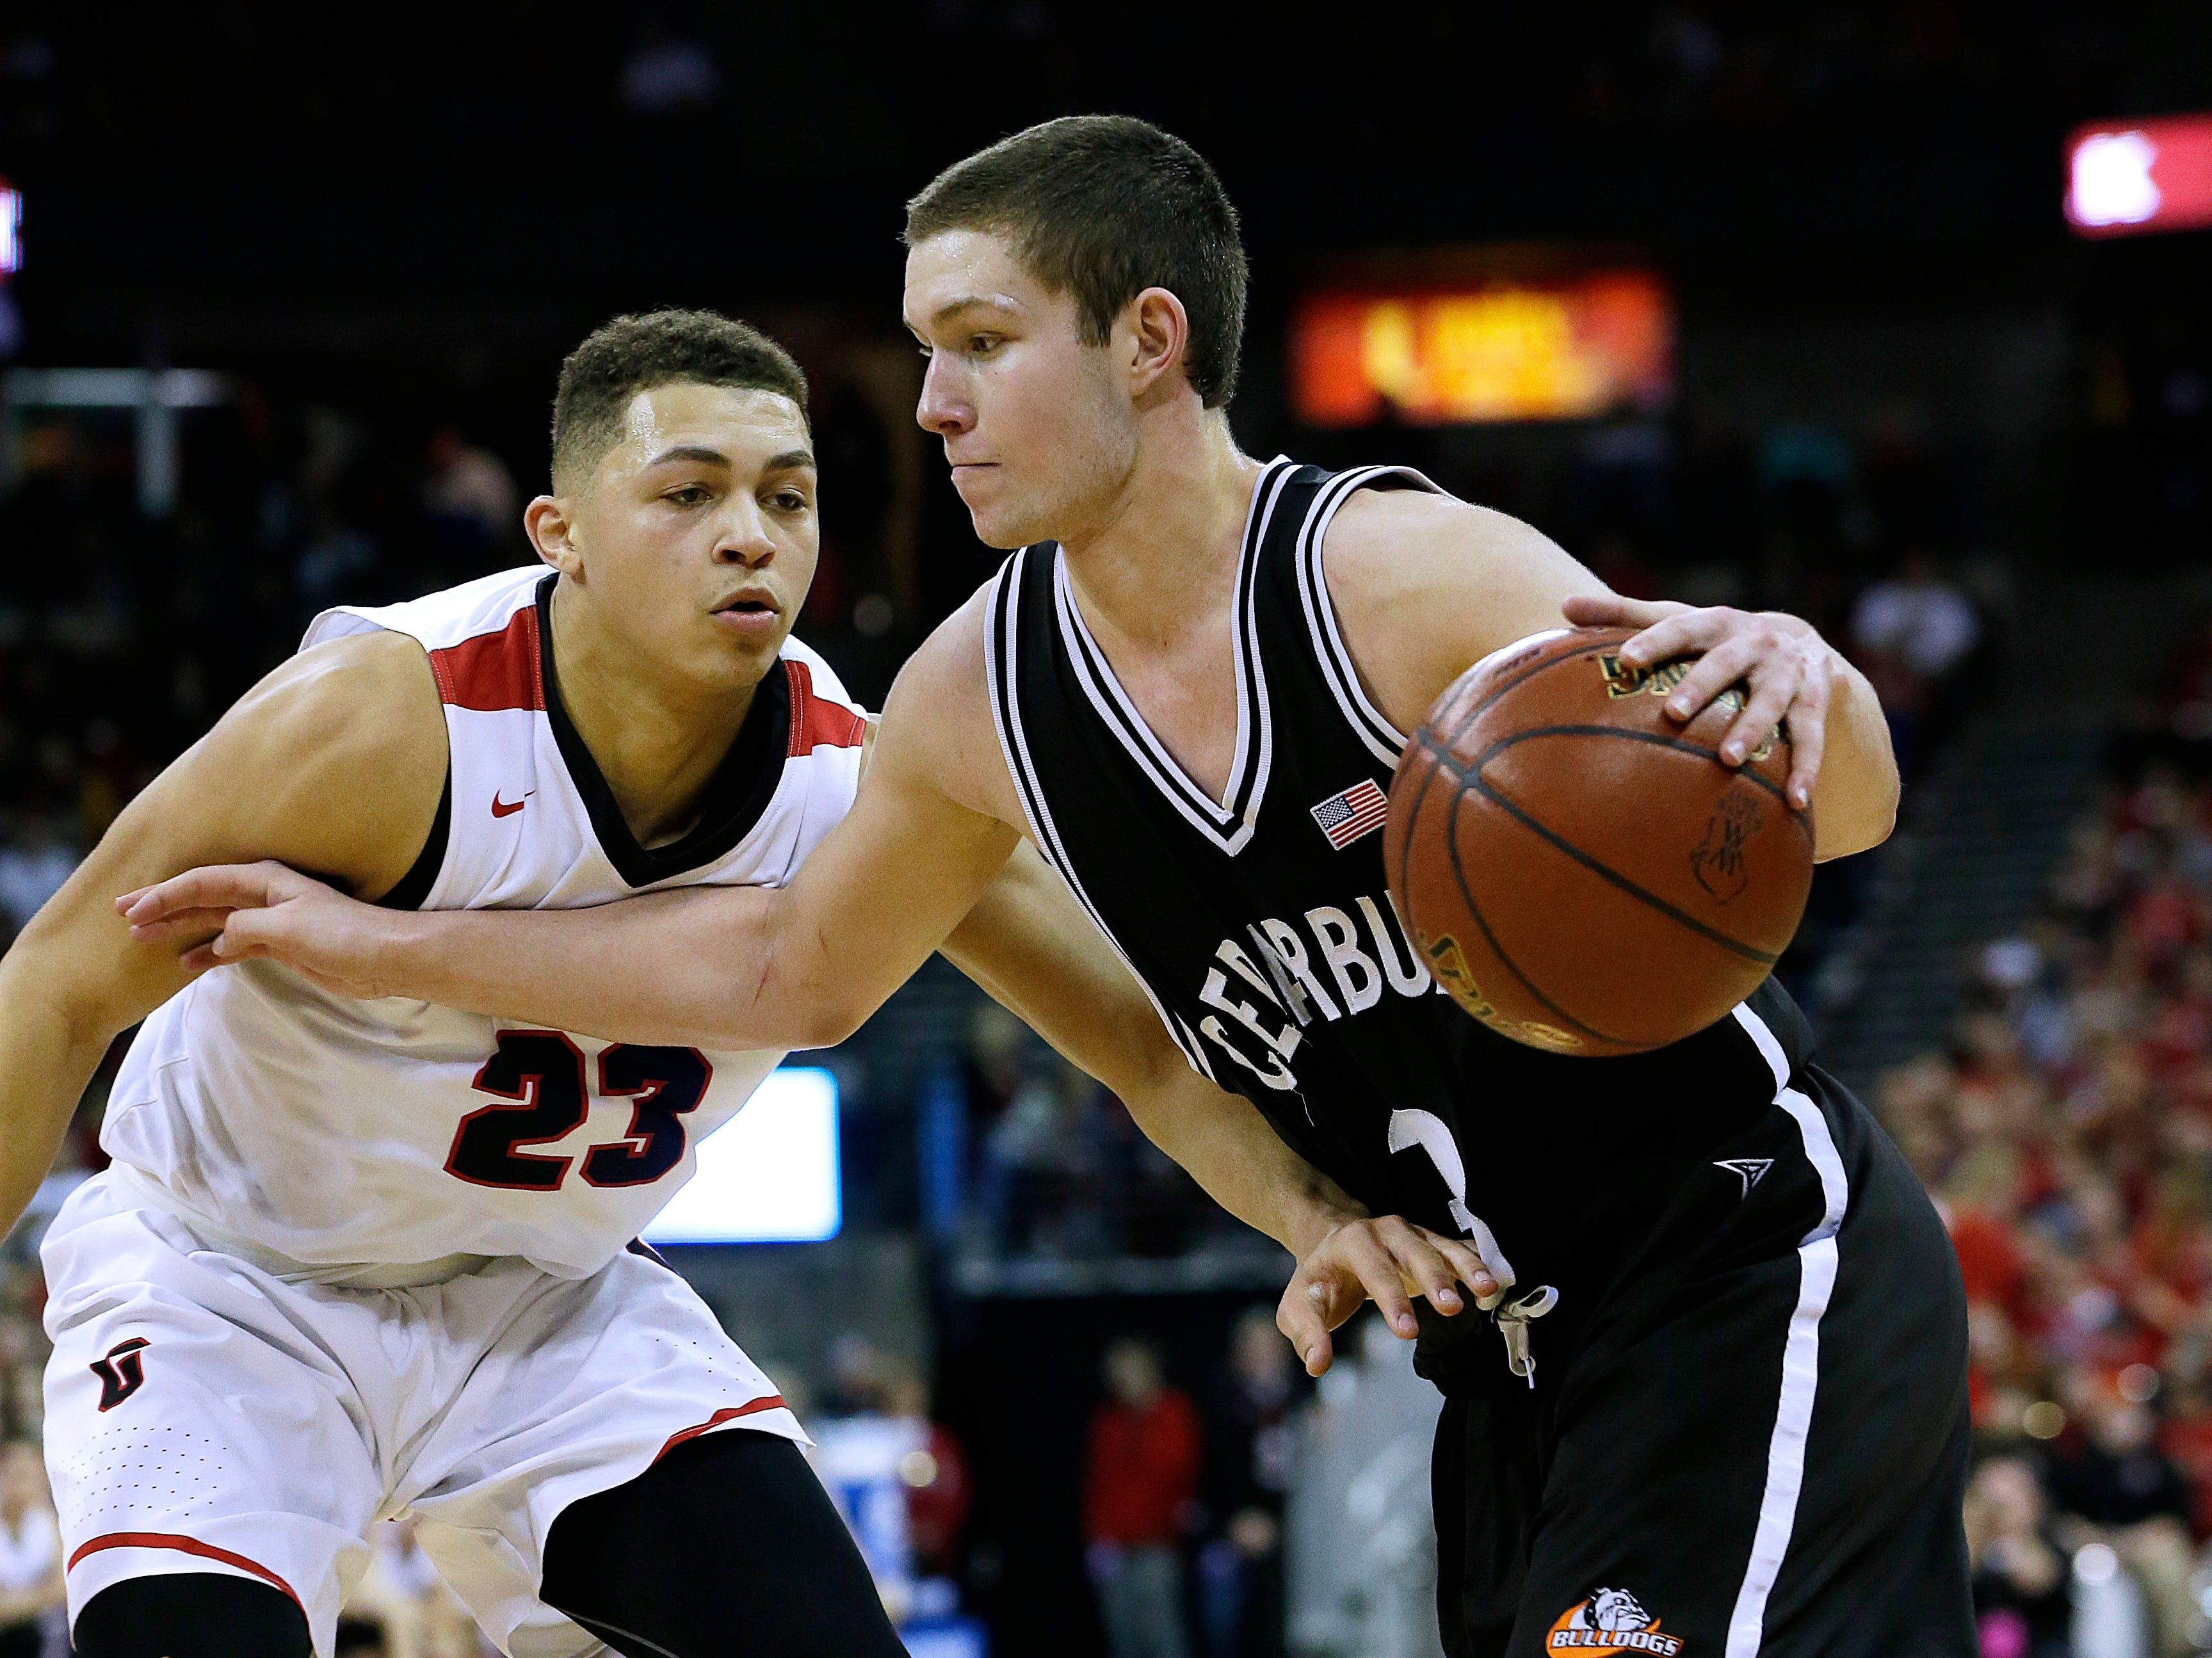 Cedarburg's John Diener (3) drives against La Crosse's Kobe King (23) during La Crosse's 55-53 win over Cedarburg in the Division 2 Championship  game b at the WIAA boys' state basketball championships Saturday, March 18, 2017, in Madison.